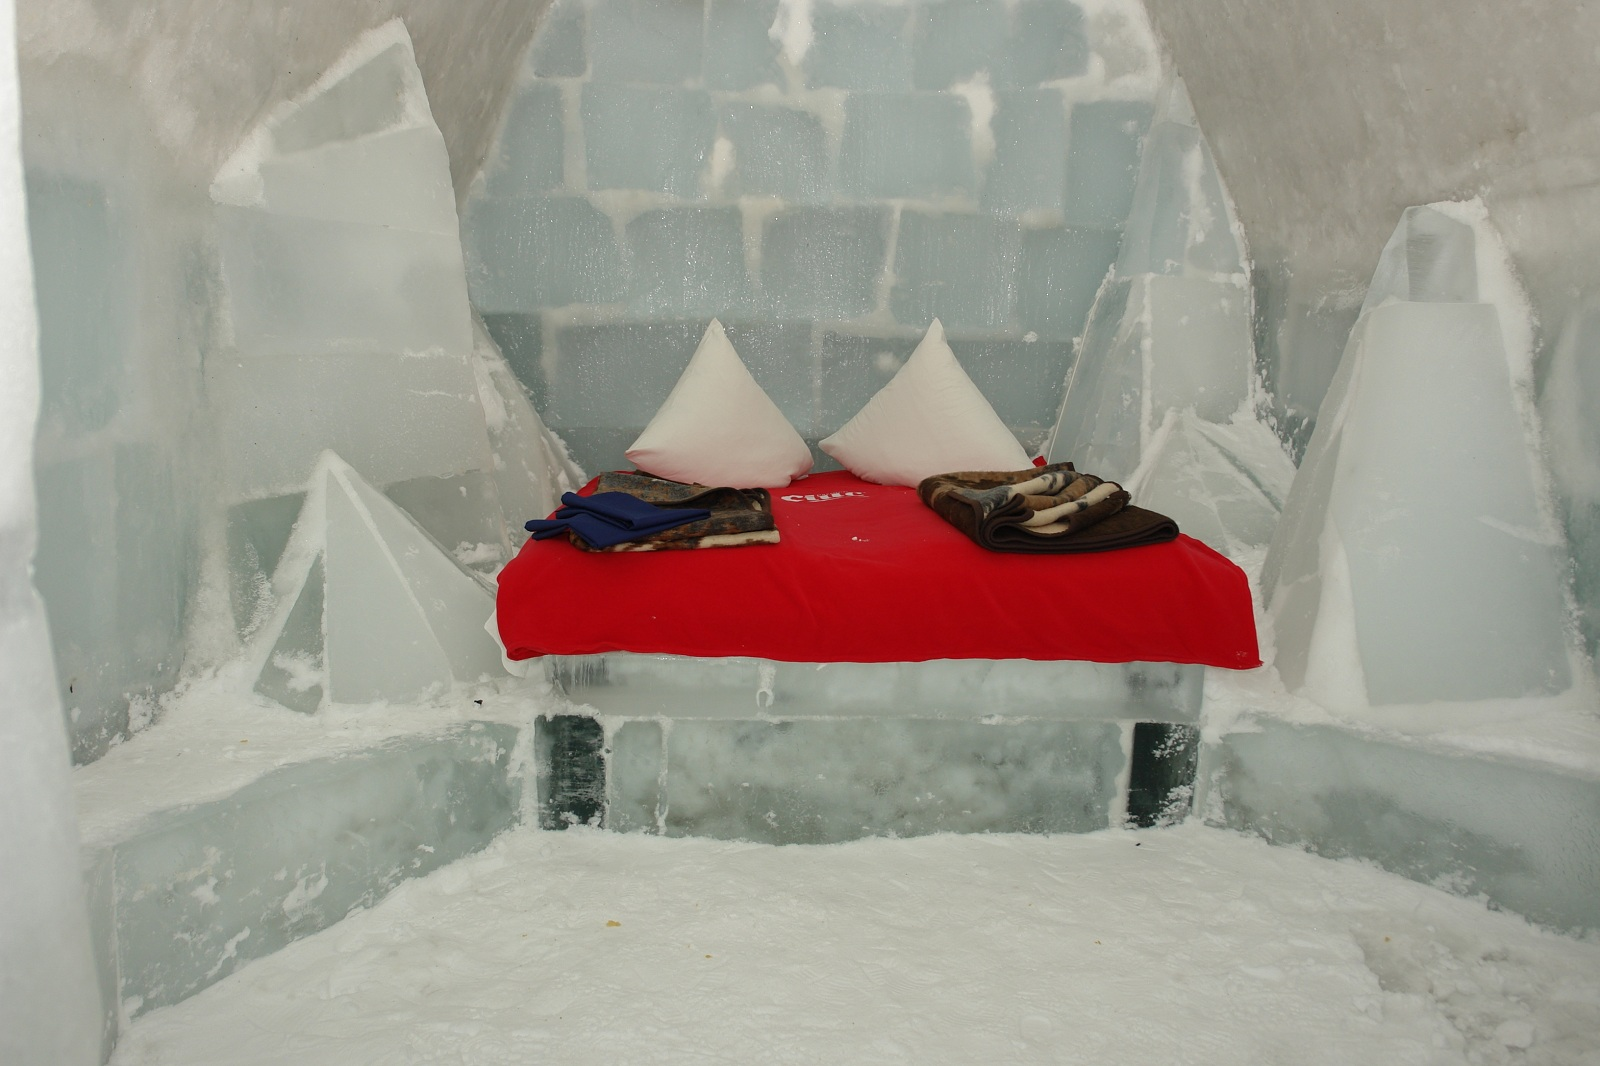 Ice Hotel Room Pictures